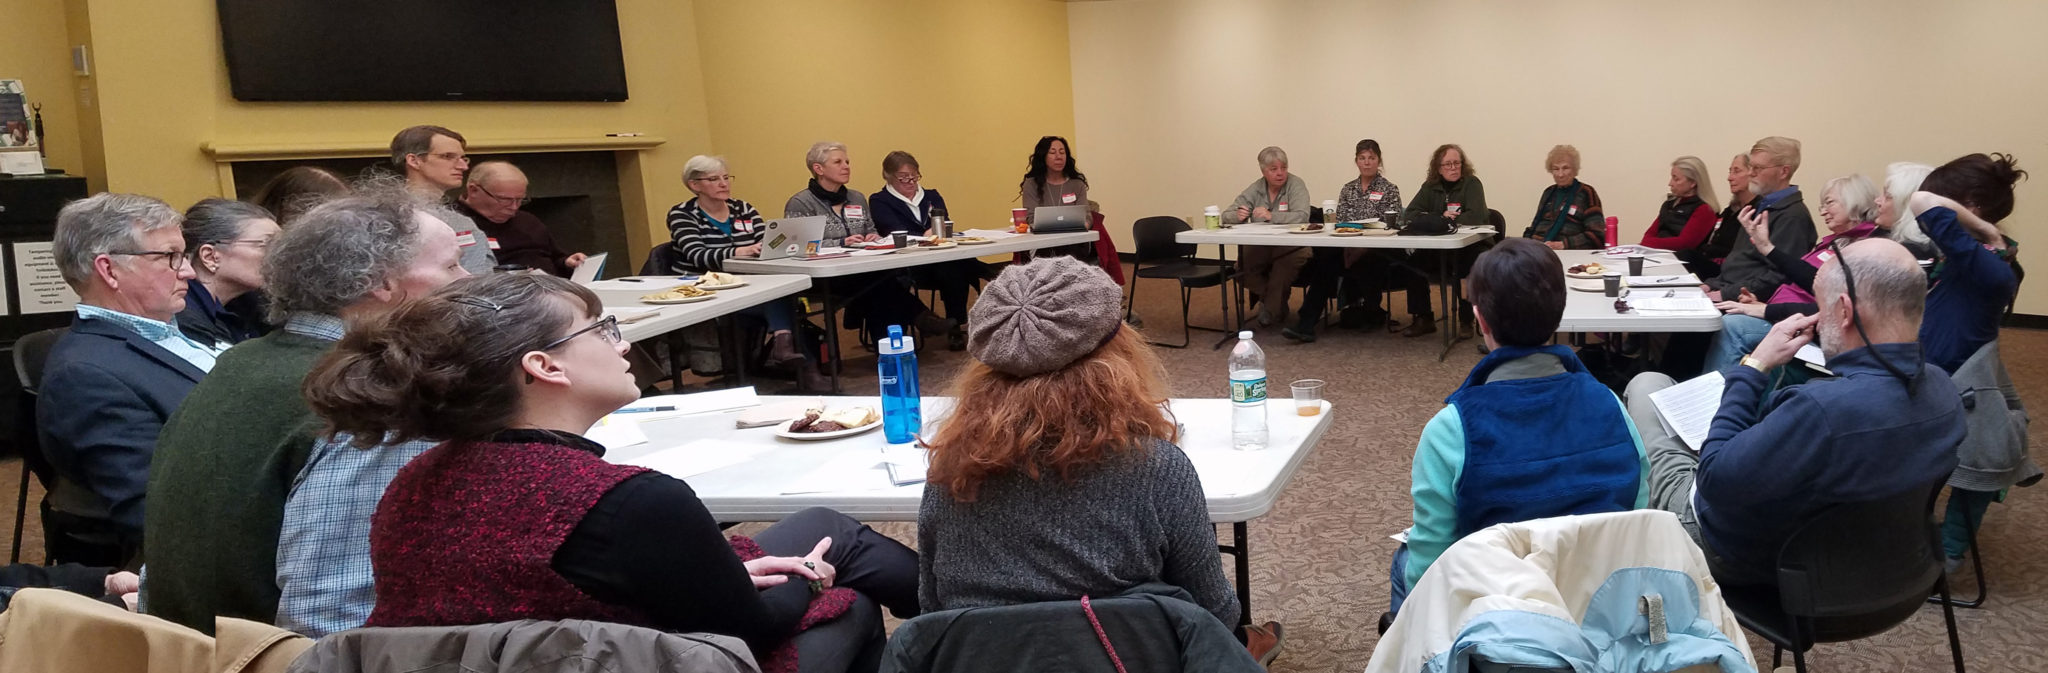 Burlington Writers Workshop Feb 17 Meeting